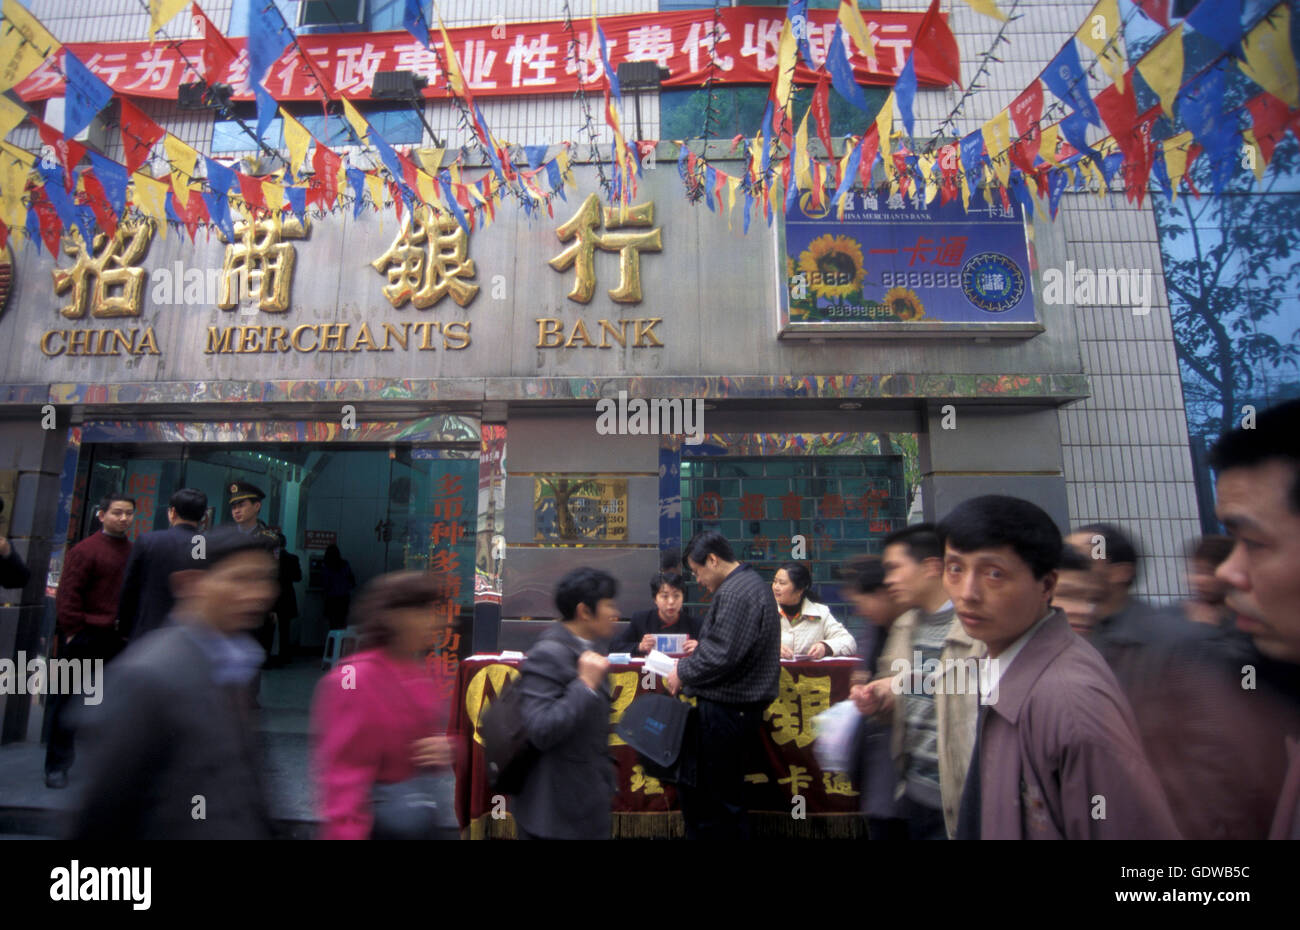 the china merchants Bank in the city of Chongqing in the province of Sichuan in china in east asia. - Stock Image